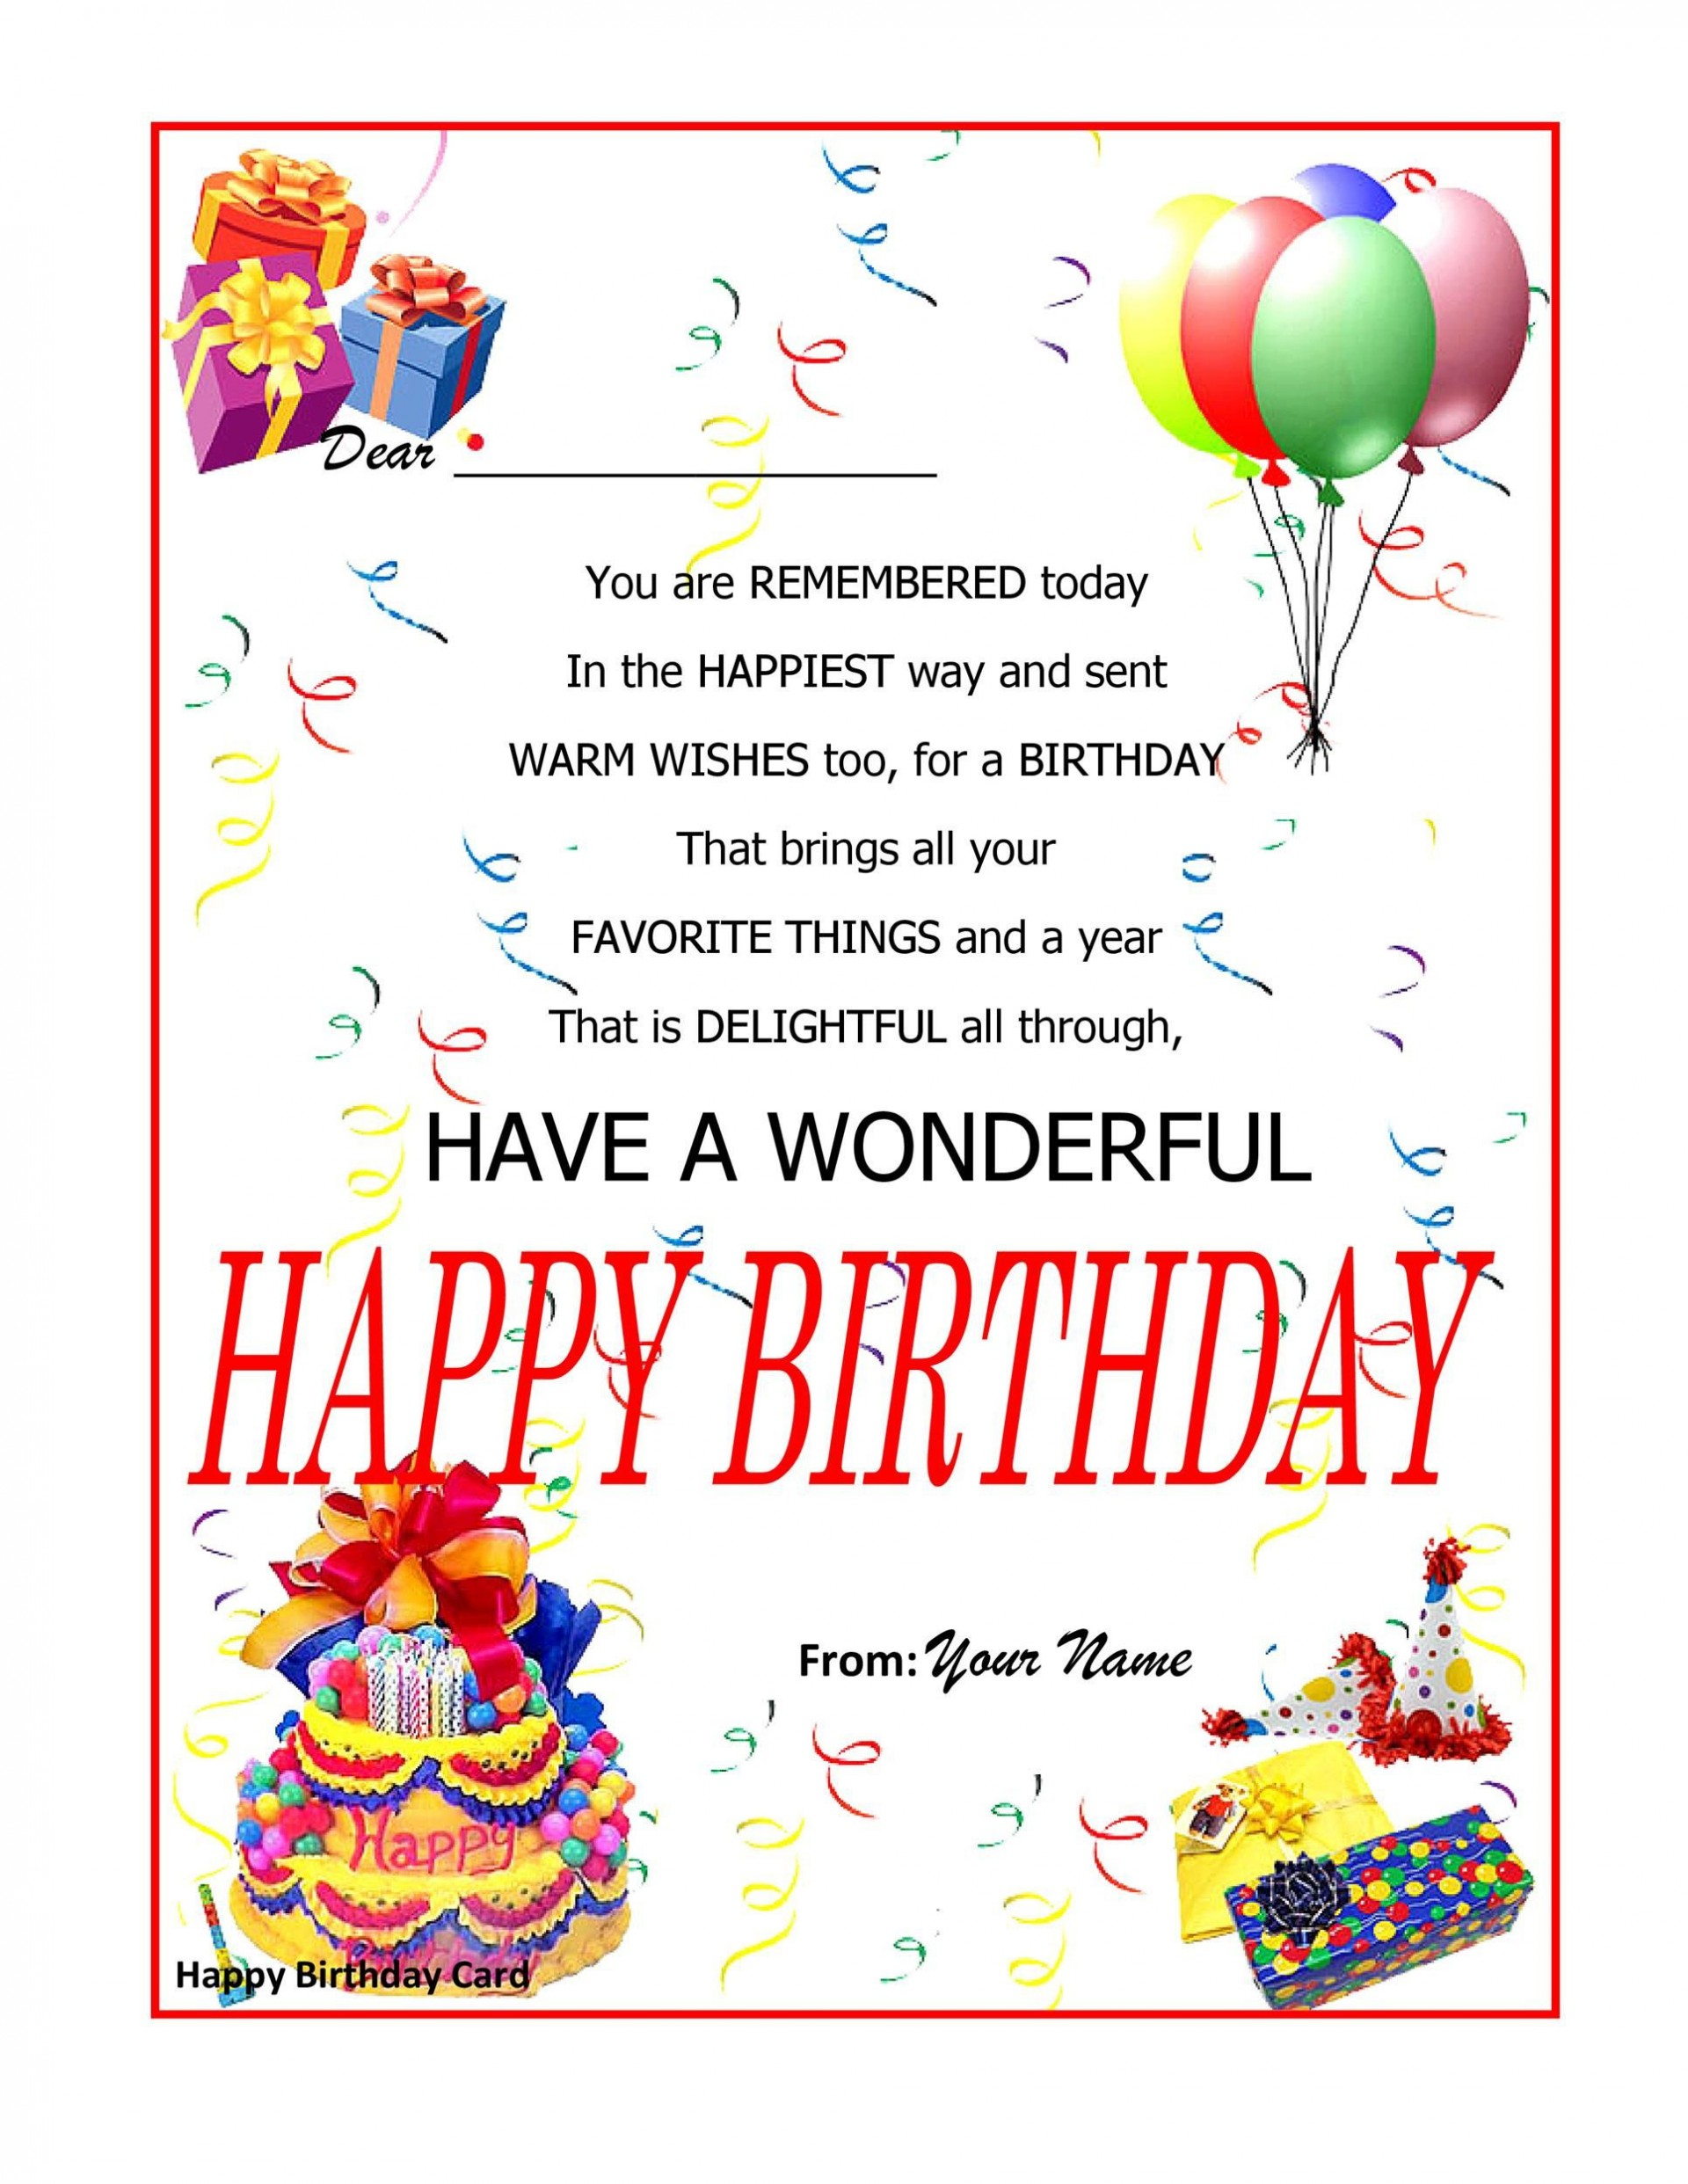 003 Beautiful Birthday Card Template Word Example  Blank Greeting Microsoft 20101920